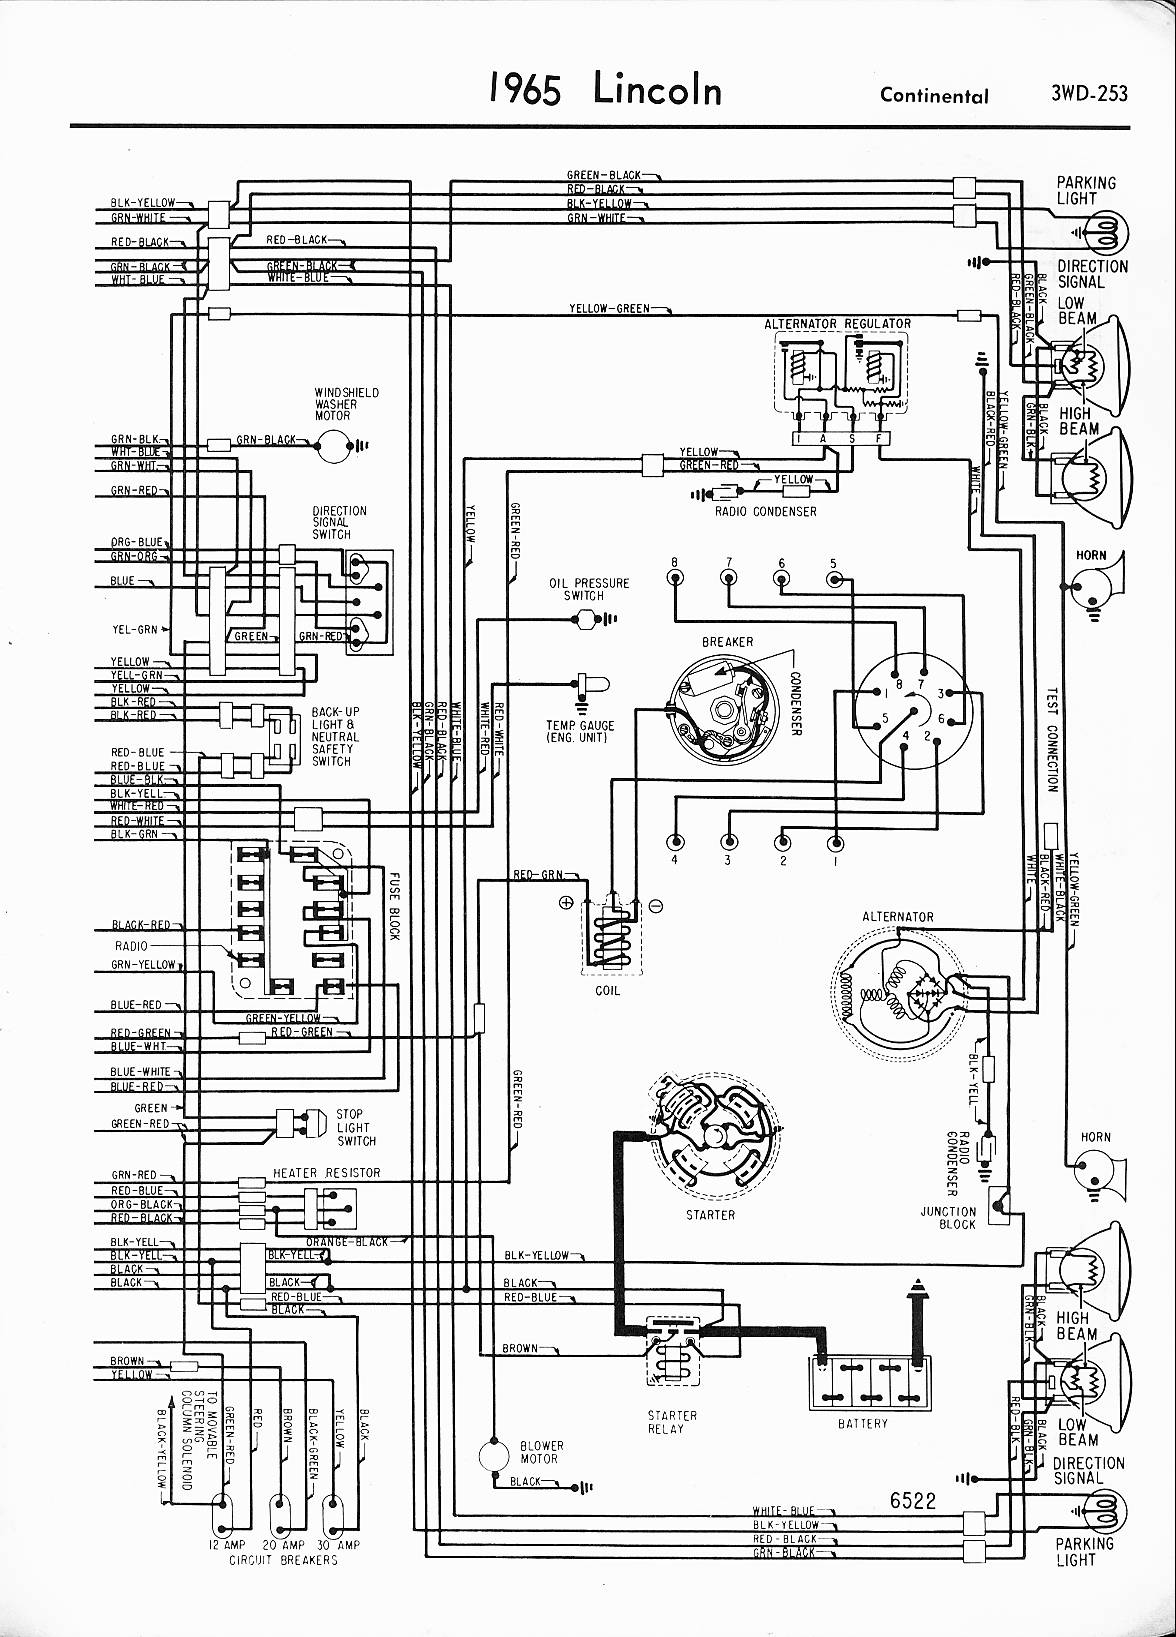 Lincoln Wiring Diagram Expert Category Circuit 89 Camry Fuse Box Diagrams 1957 1965 Rh Oldcarmanualproject Com Dc 600